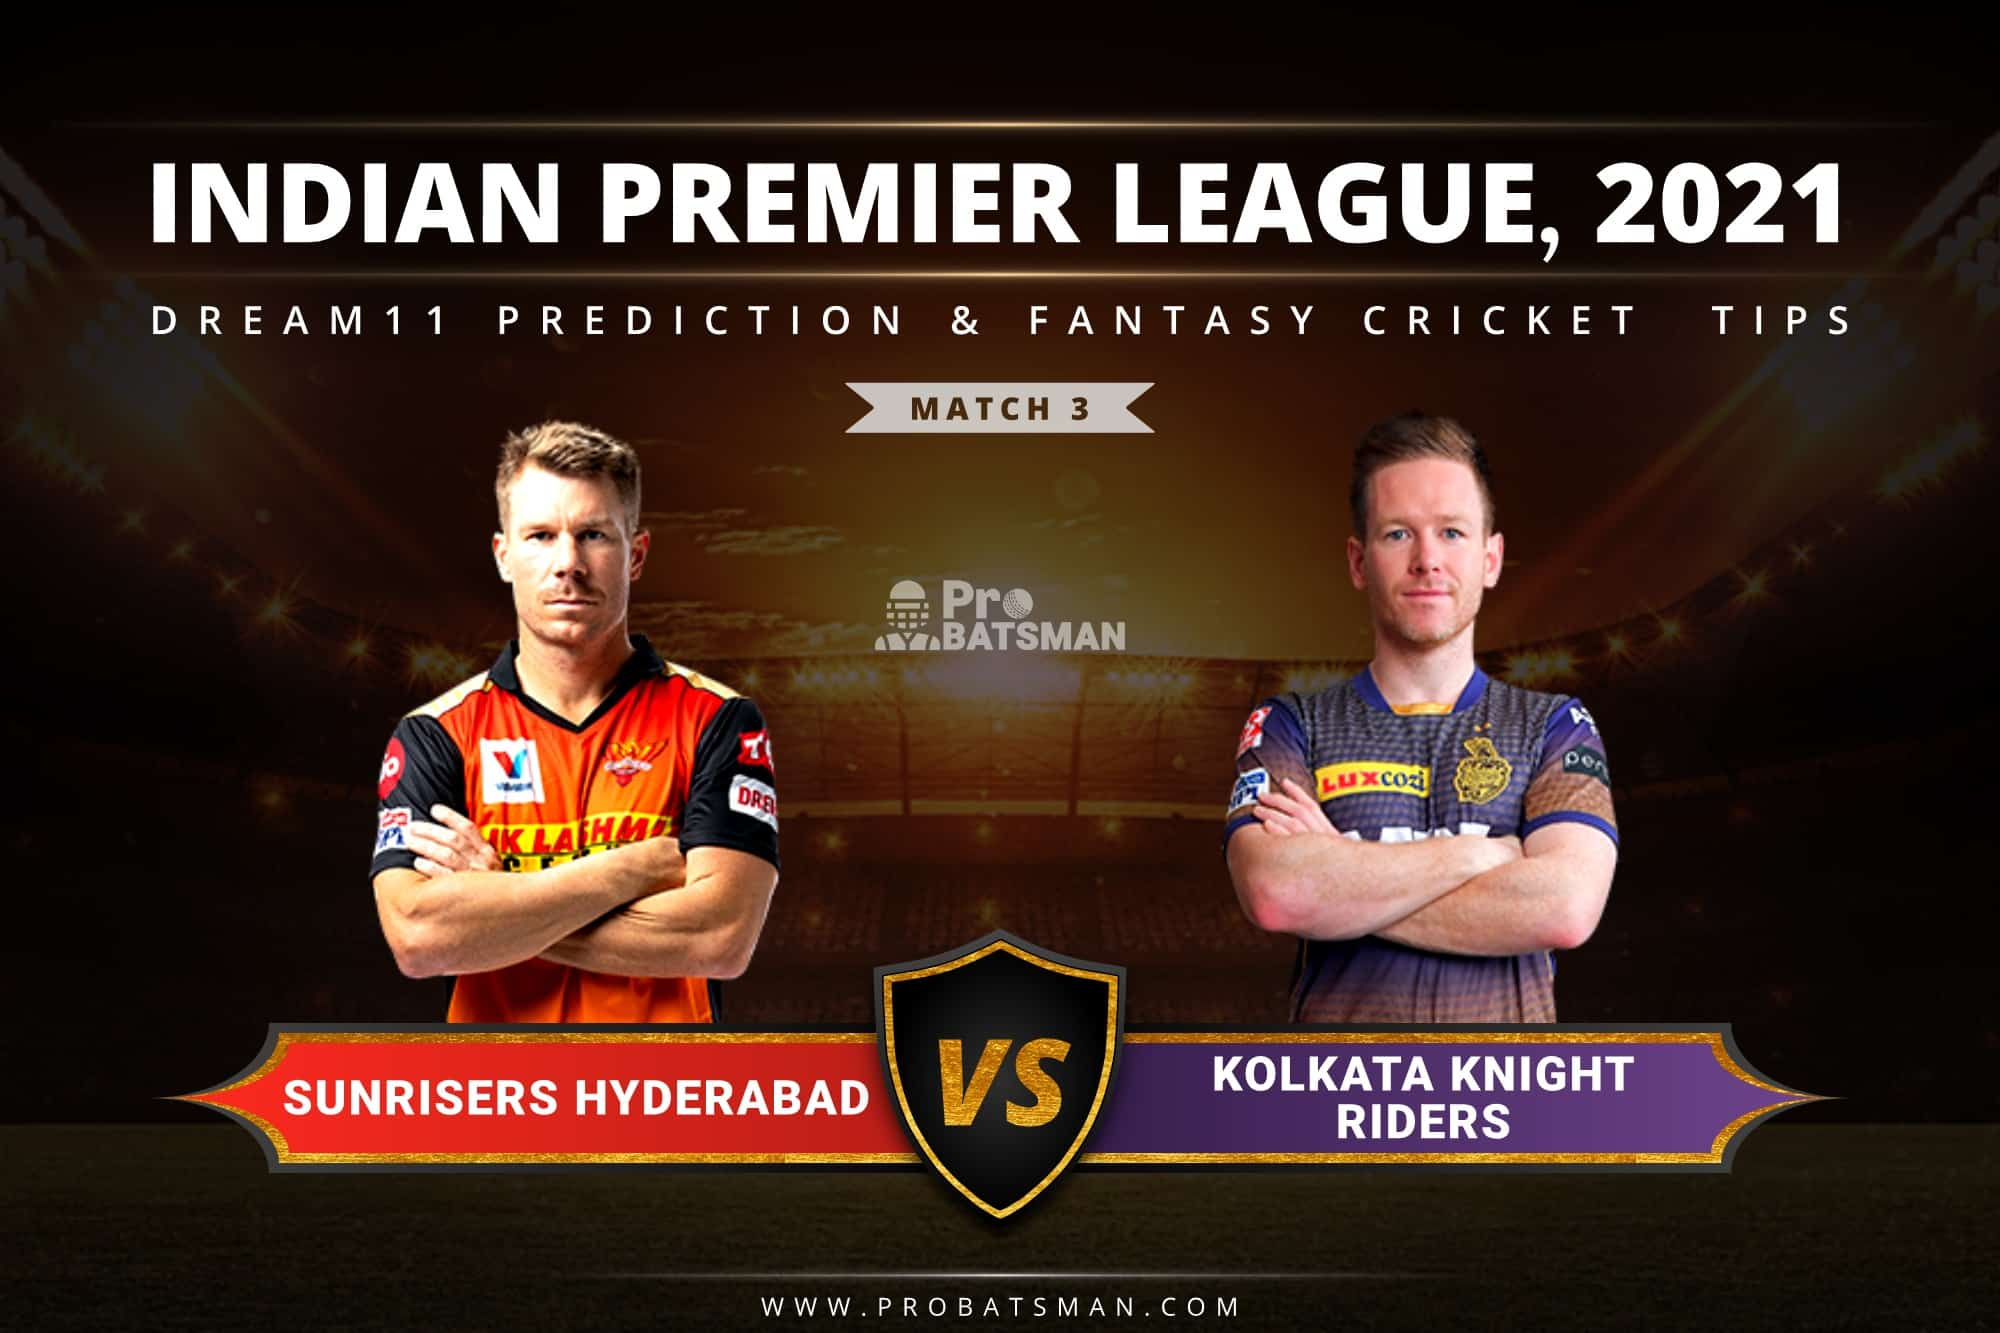 SRH vs KKR Dream11 Prediction: Fantasy Cricket Tips, Playing XI, Pitch Report, Stats, Match & Injury Updates, Indian Premier League (IPL) 2021, Match 3